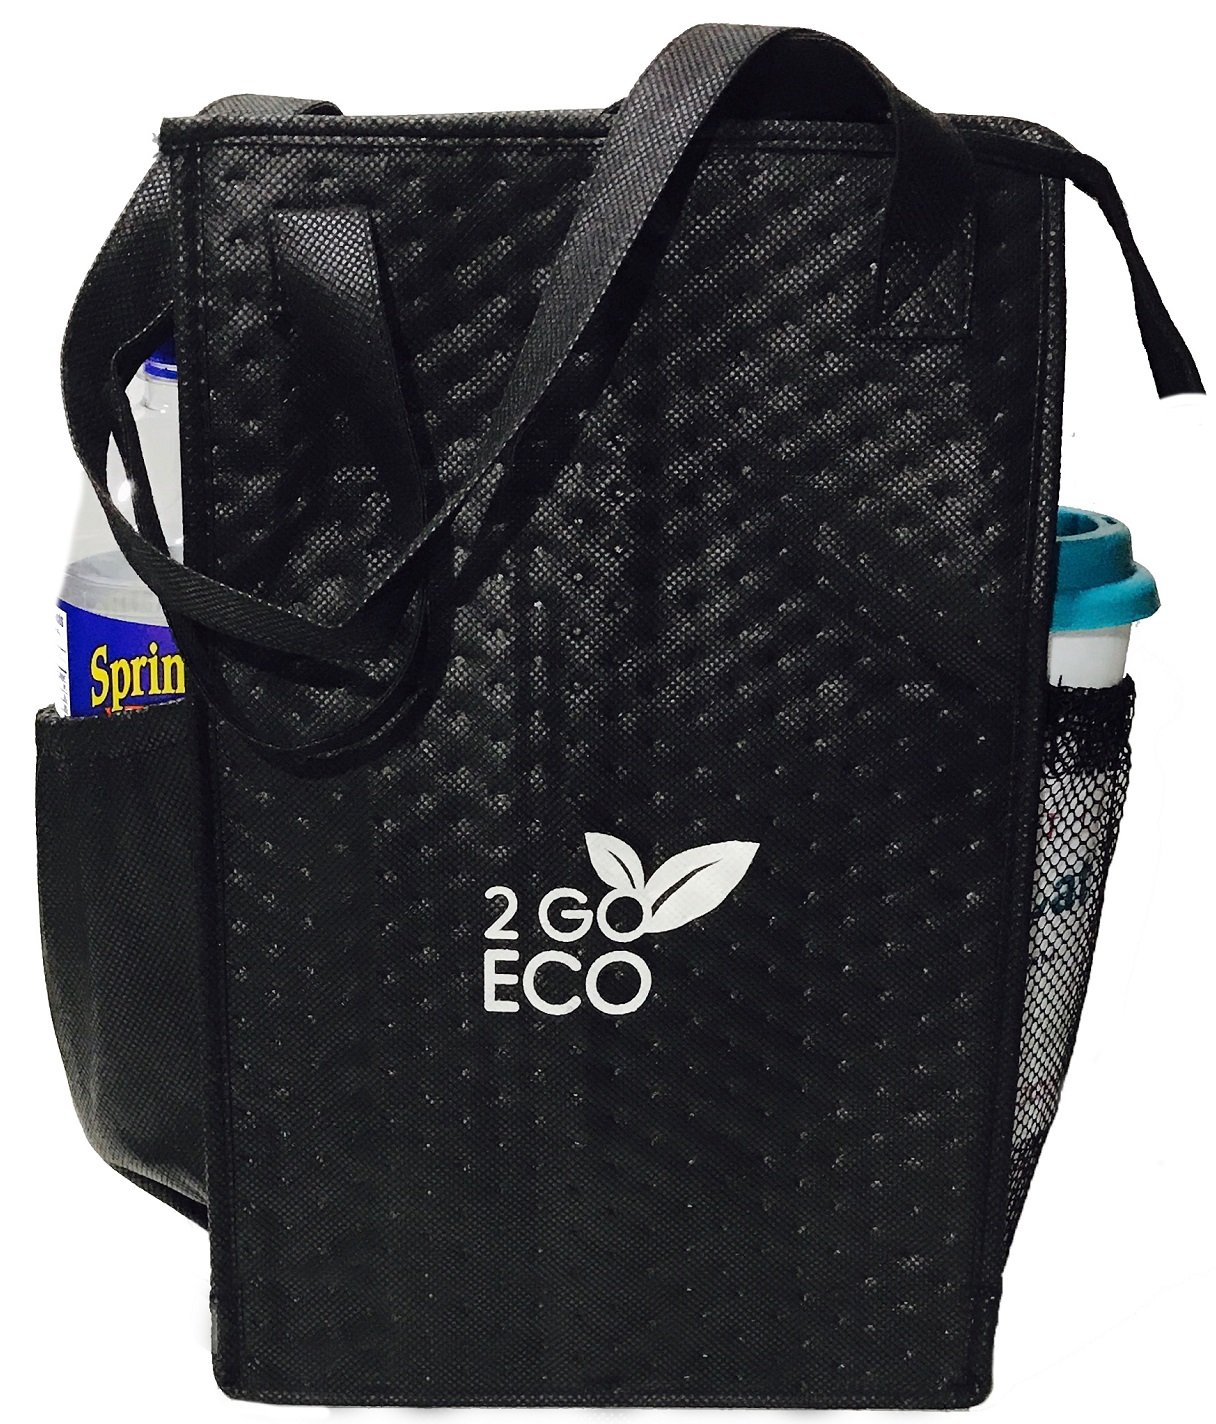 2GOECO Insulated Lunch Bag Wine Cooler Tote Reusable Tall Water Bottle Carrier For Adults Men Women | Black